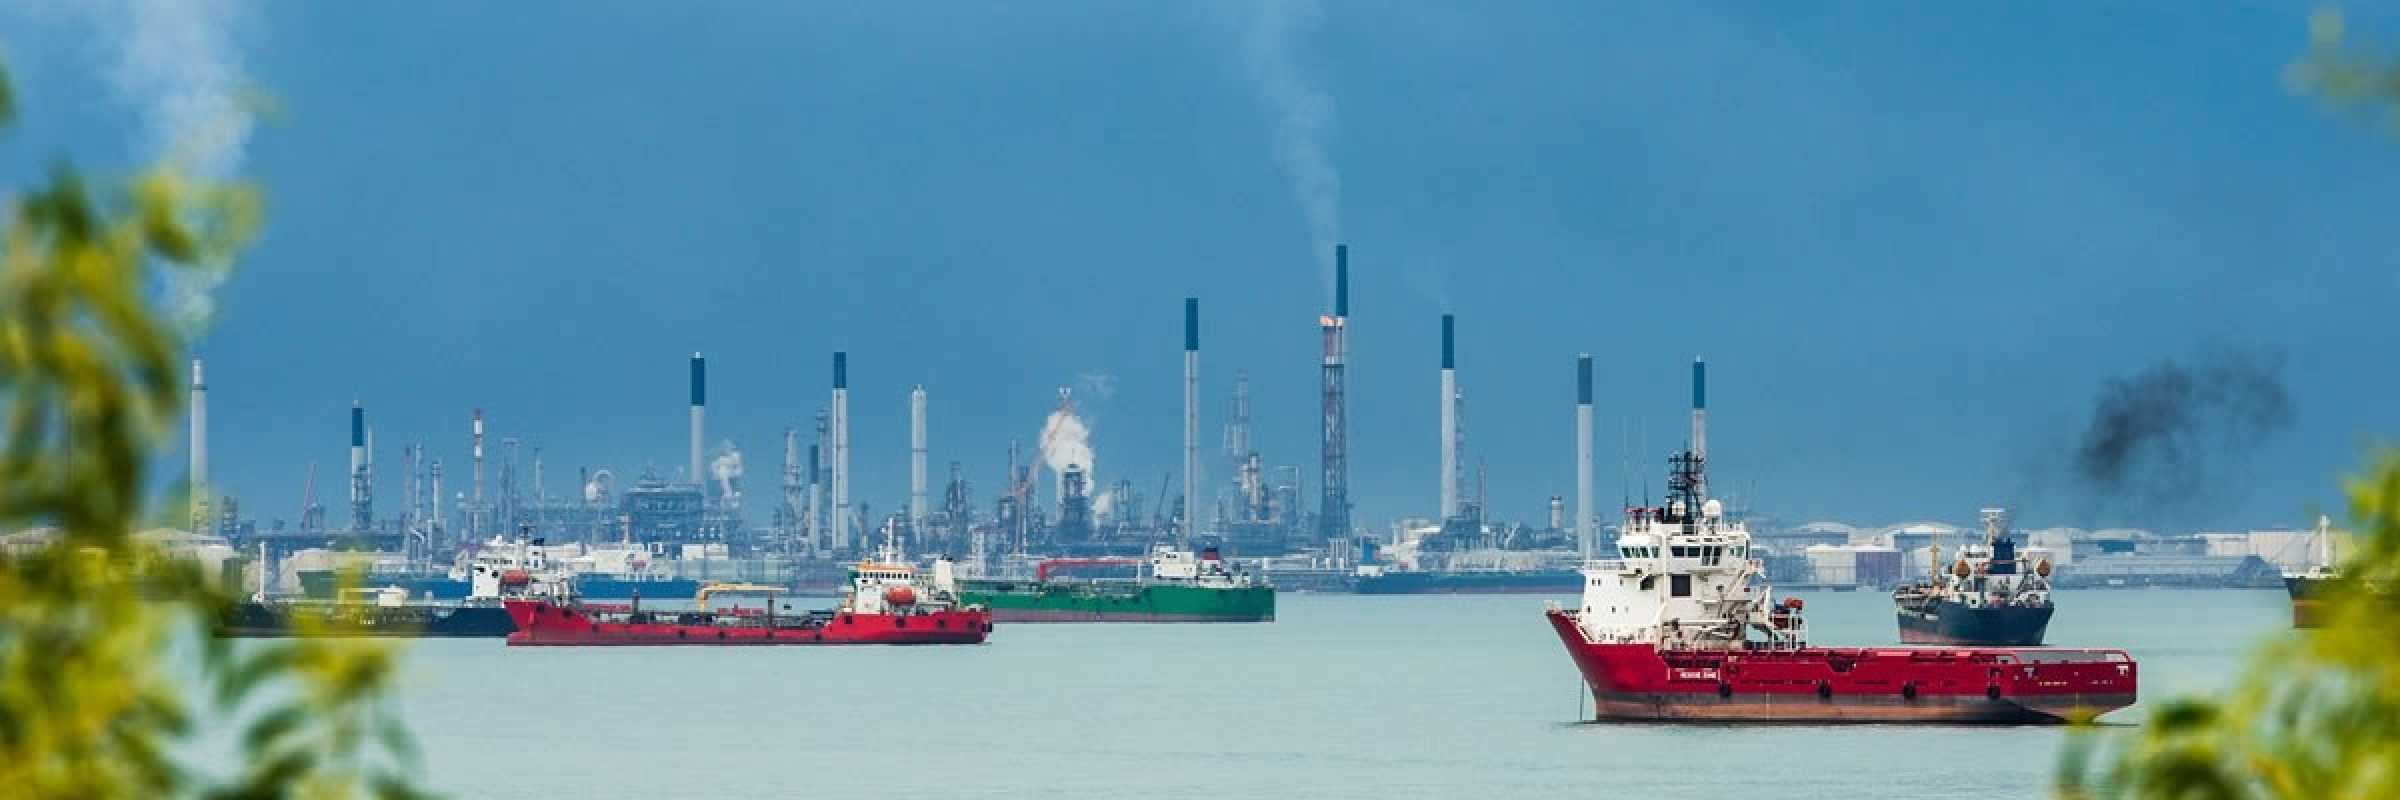 Singapore reminds on scrubber residue disposal procedure